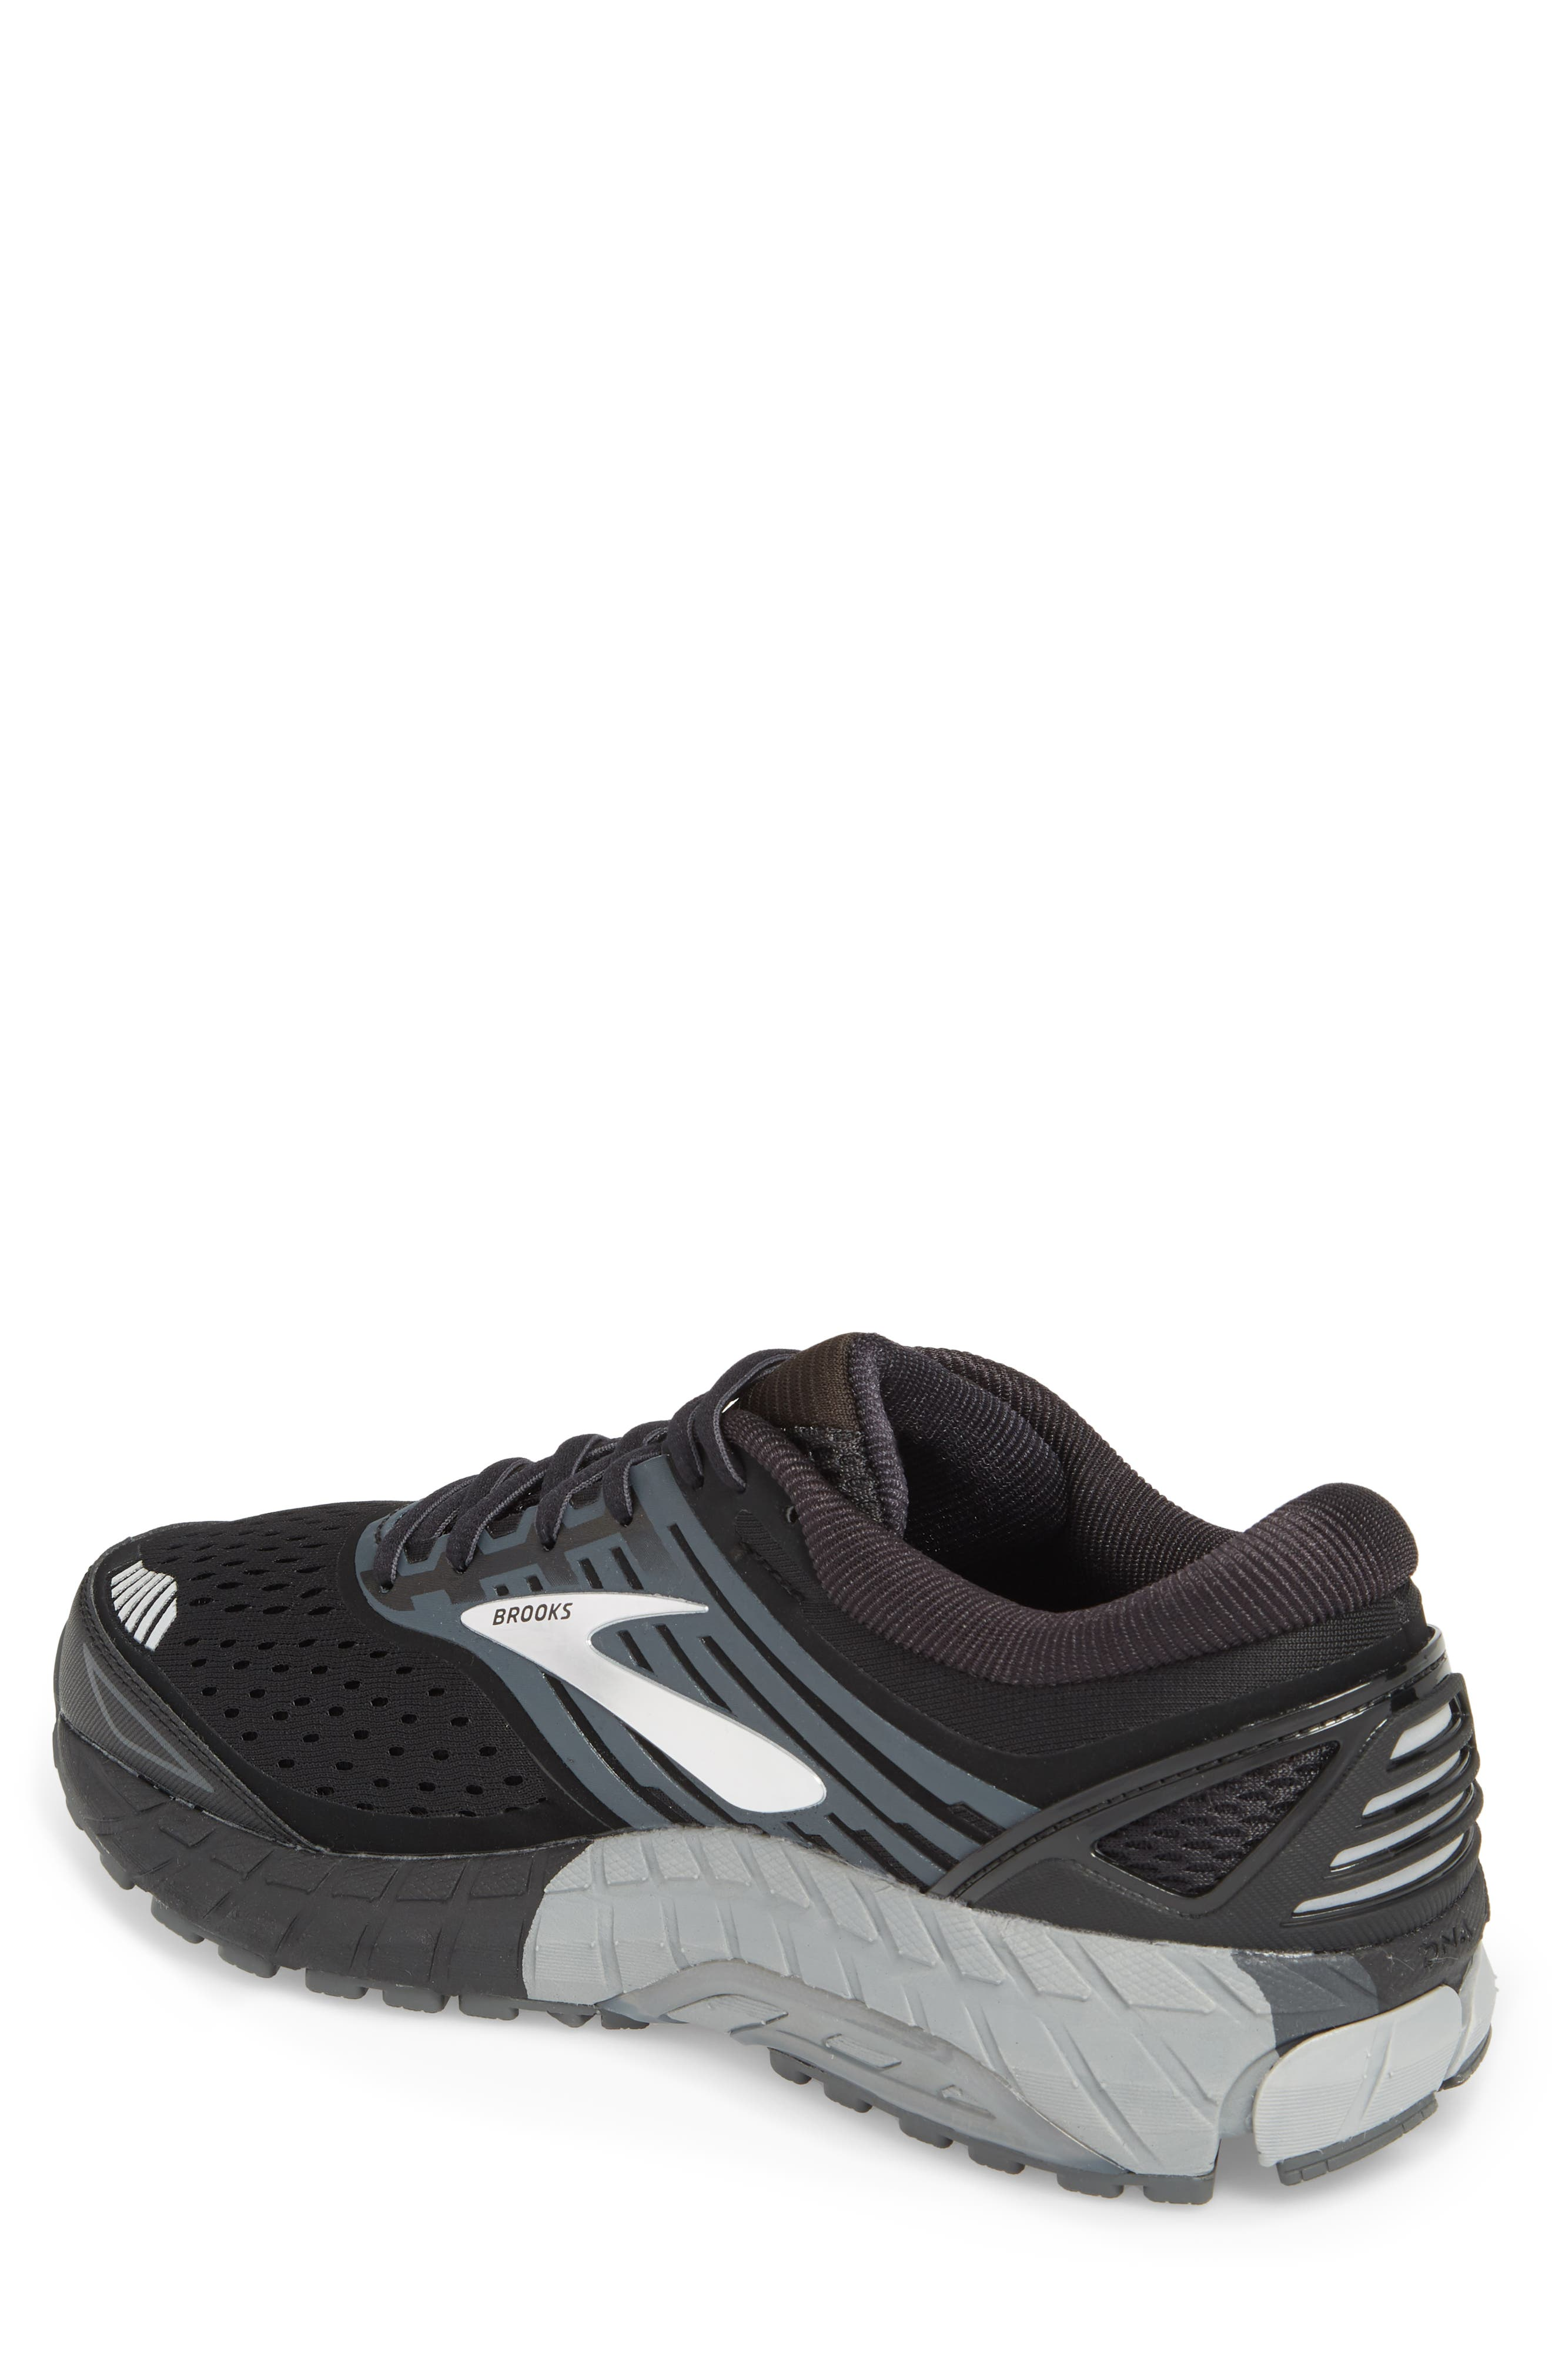 Beast '18 Running Shoe,                             Alternate thumbnail 2, color,                             Black/ Grey/ Silver